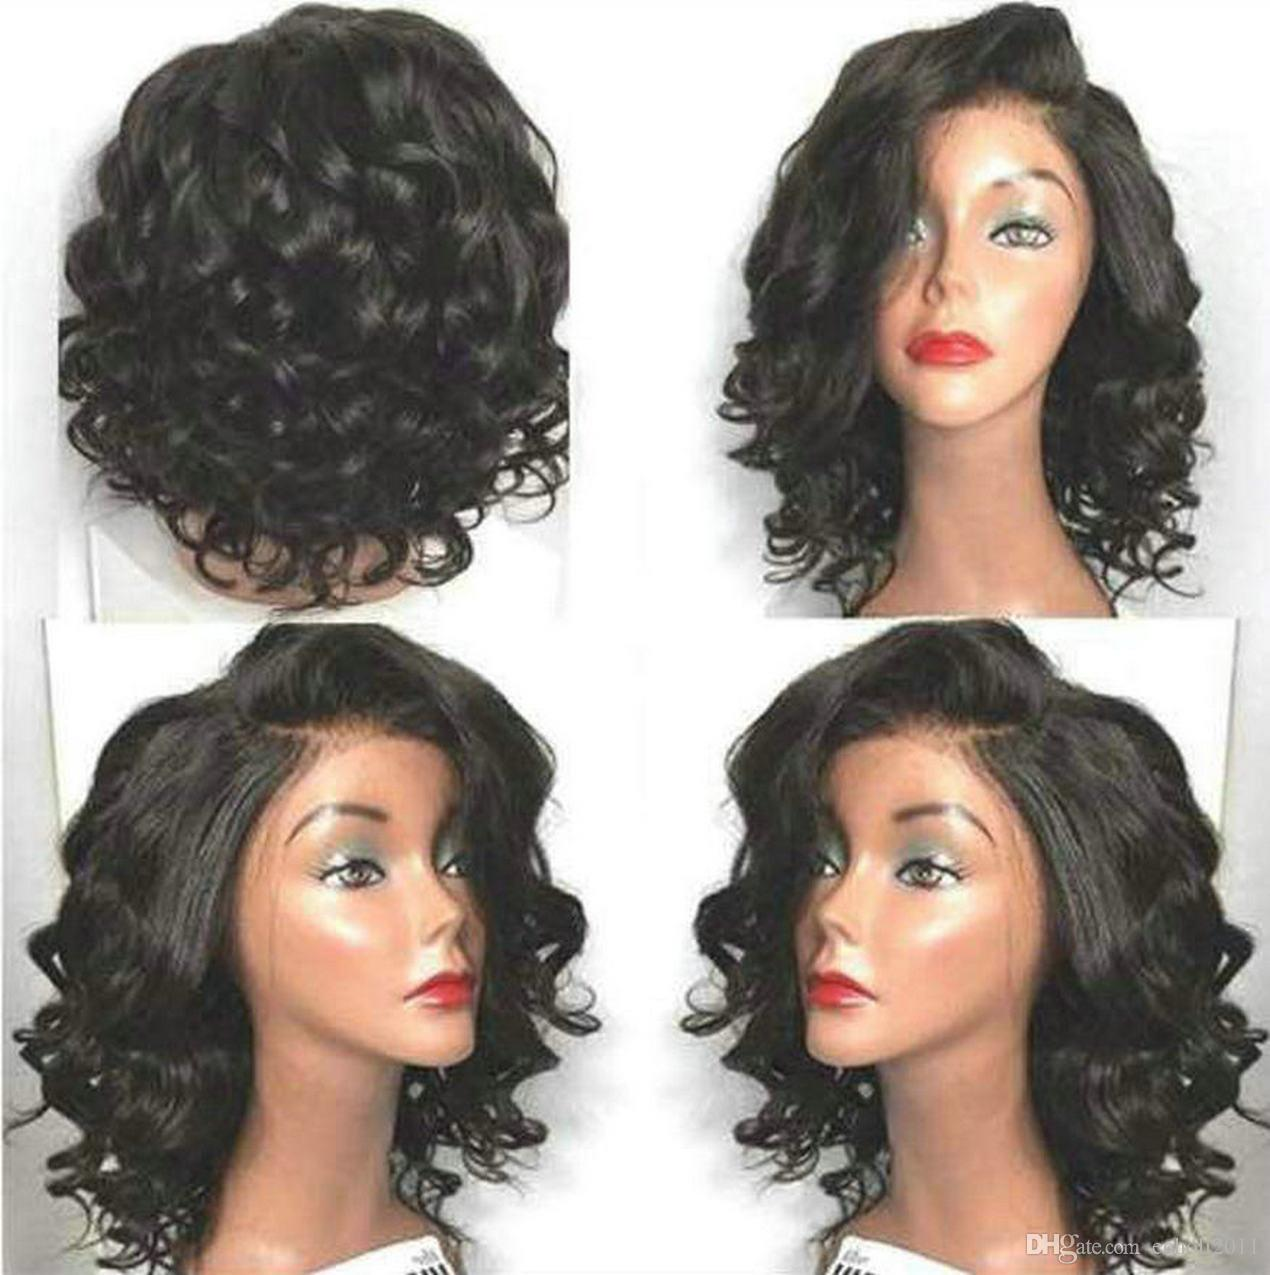 Cheap side part wavy bob body wave full lace human hair wigs for black women short curly wavy lace front wigs 10-18inch